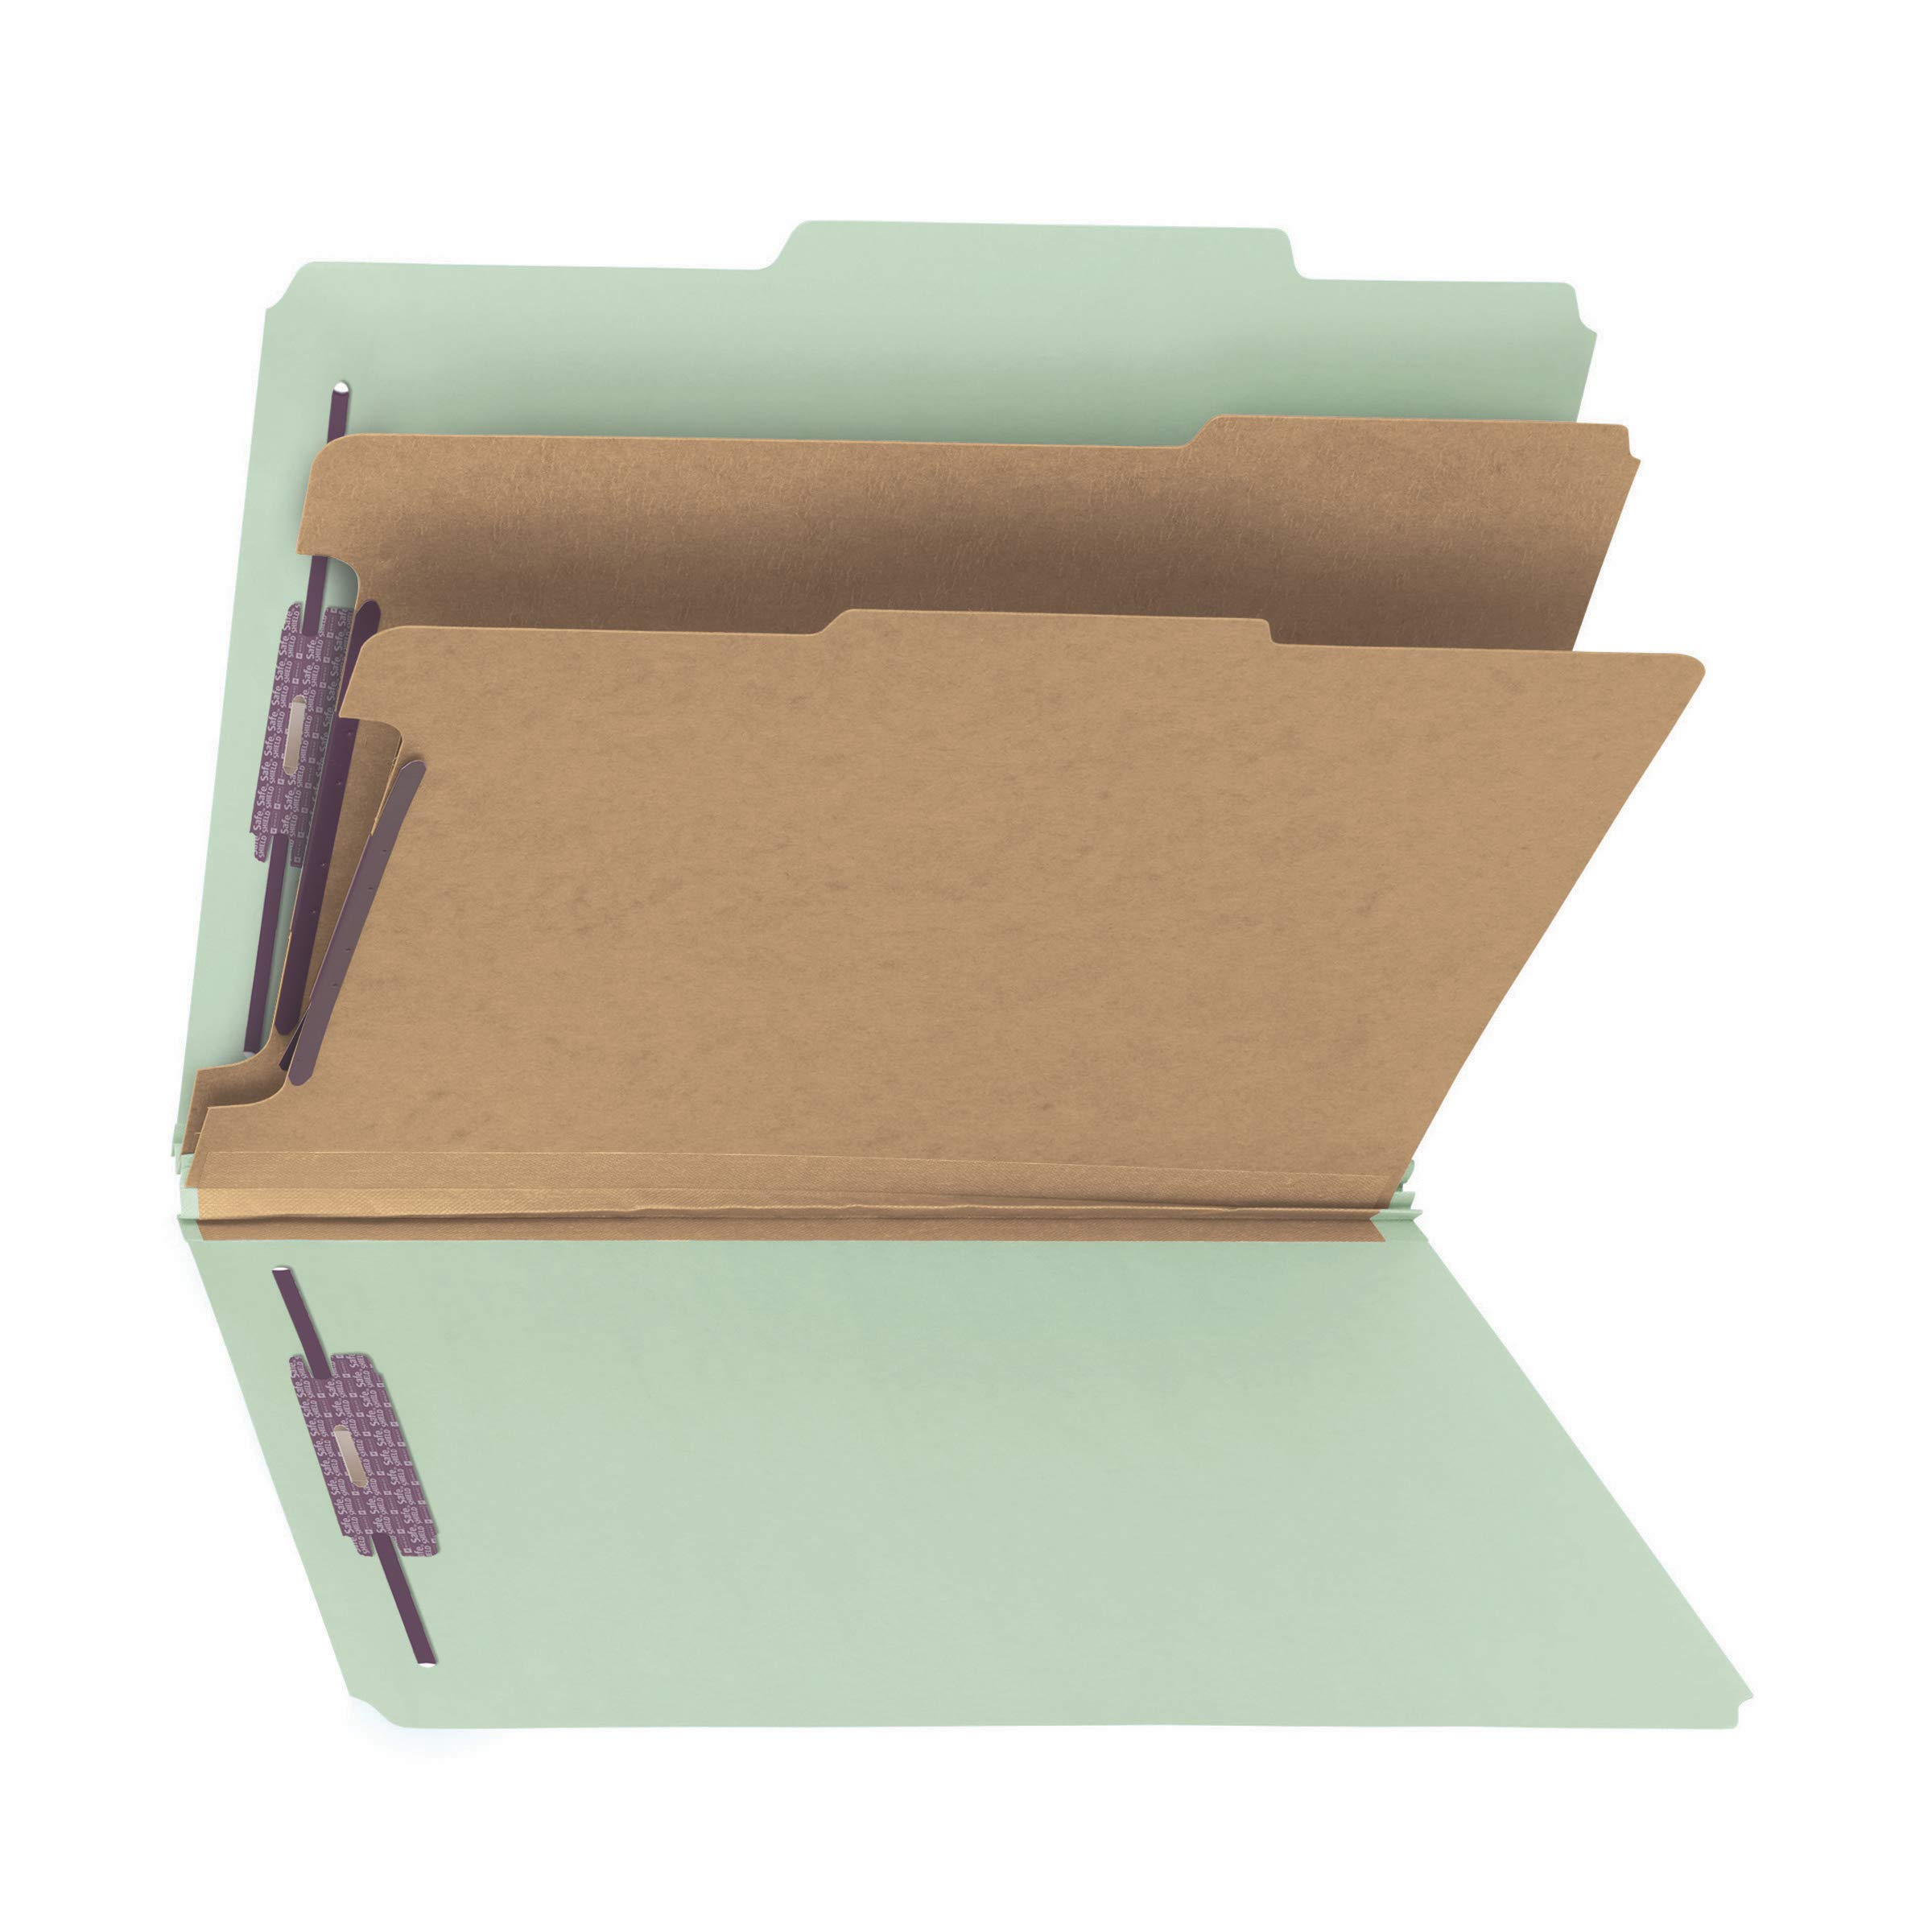 Smead PressGuard Classification File Folder with SafeSHIELD Fasteners, 2 Dividers, 2'' Expansion, Letter Size, Gray/Green, 10 per Box (14206) by Smead